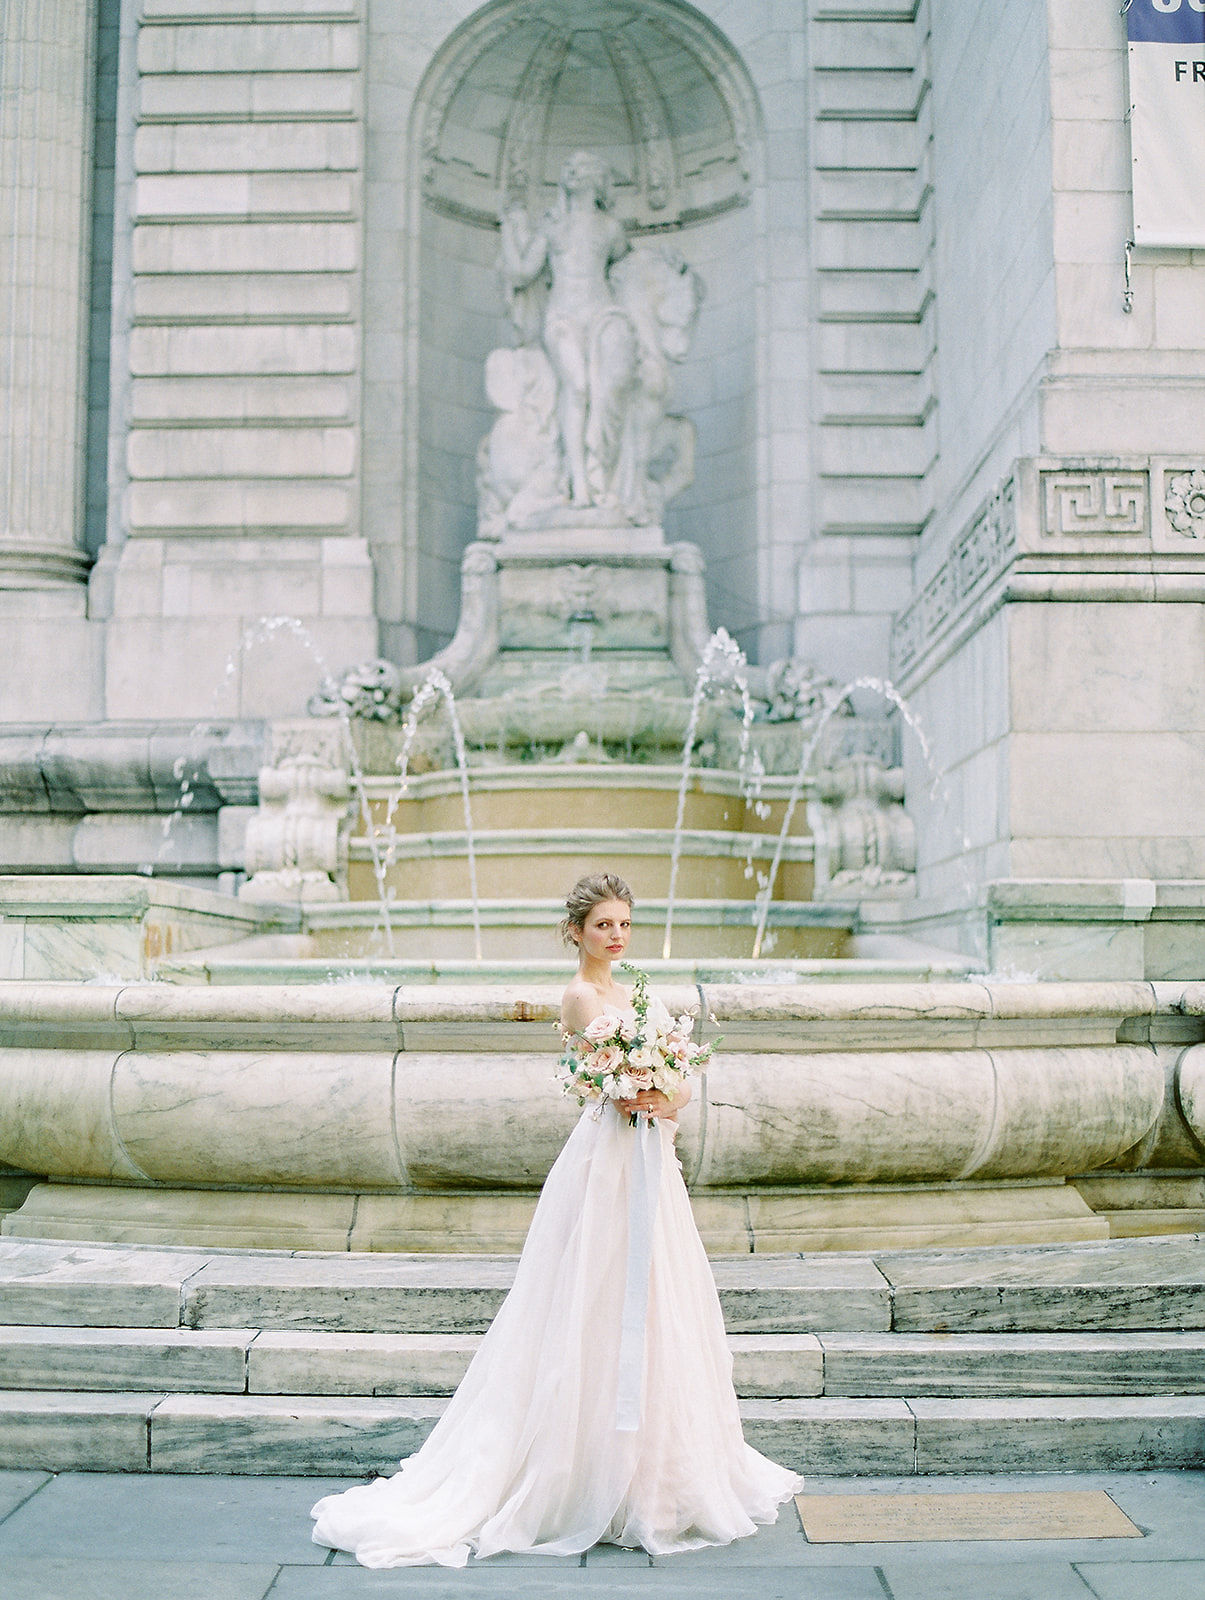 alla prima draped linen wedding gown at new york public library4.jpg